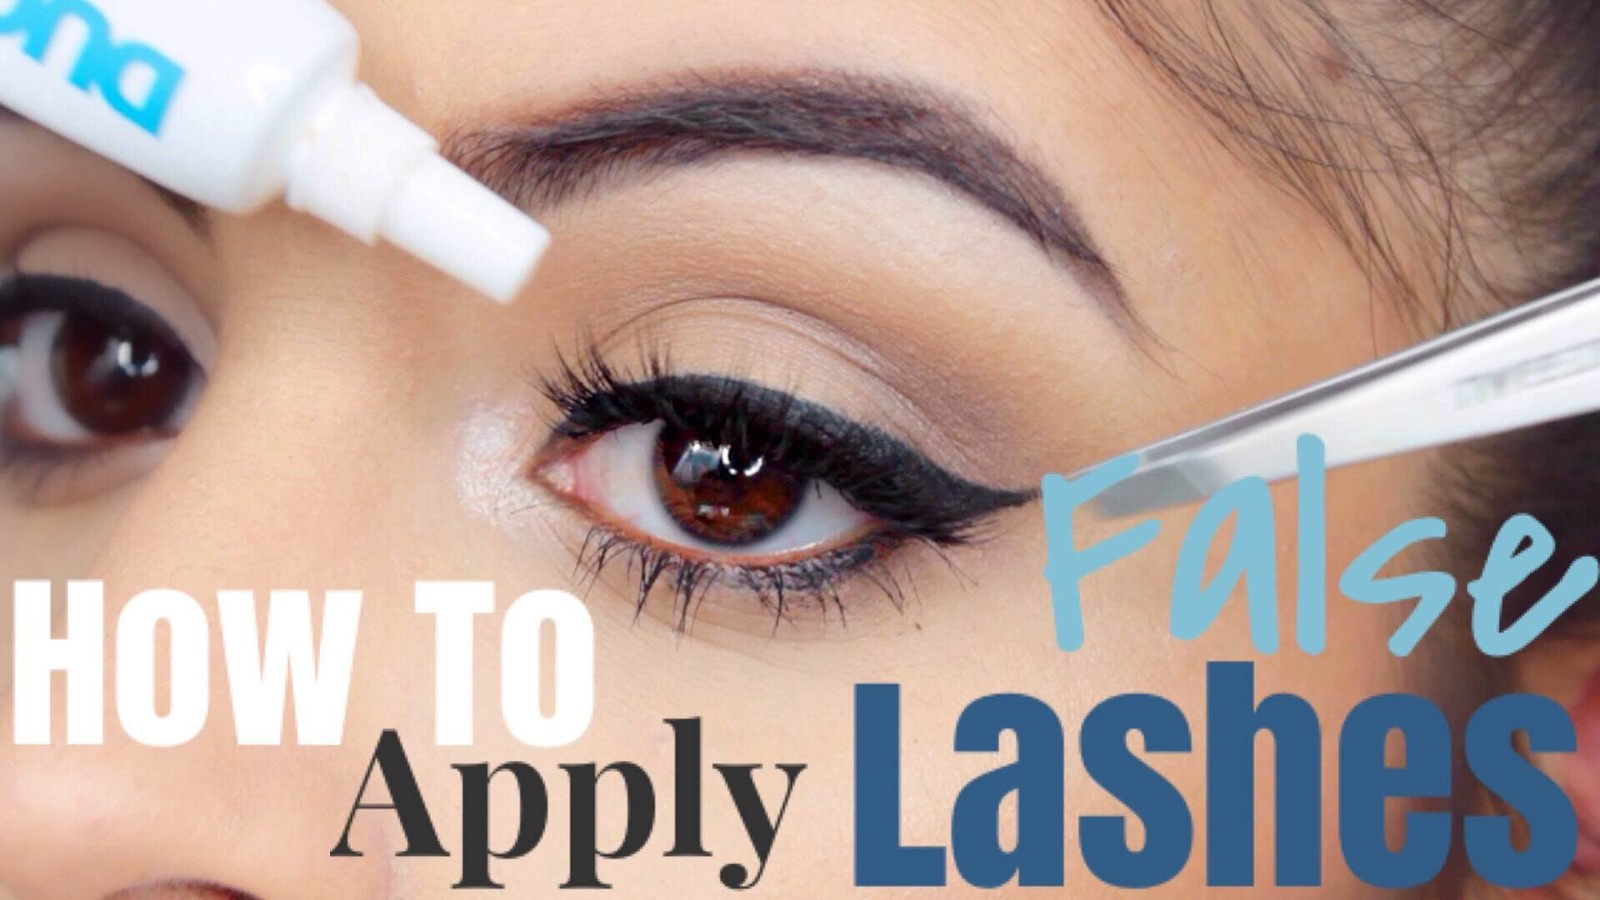 How To Apply False Eyelashes Perfectly A Beginners Guide To Eye Makeup